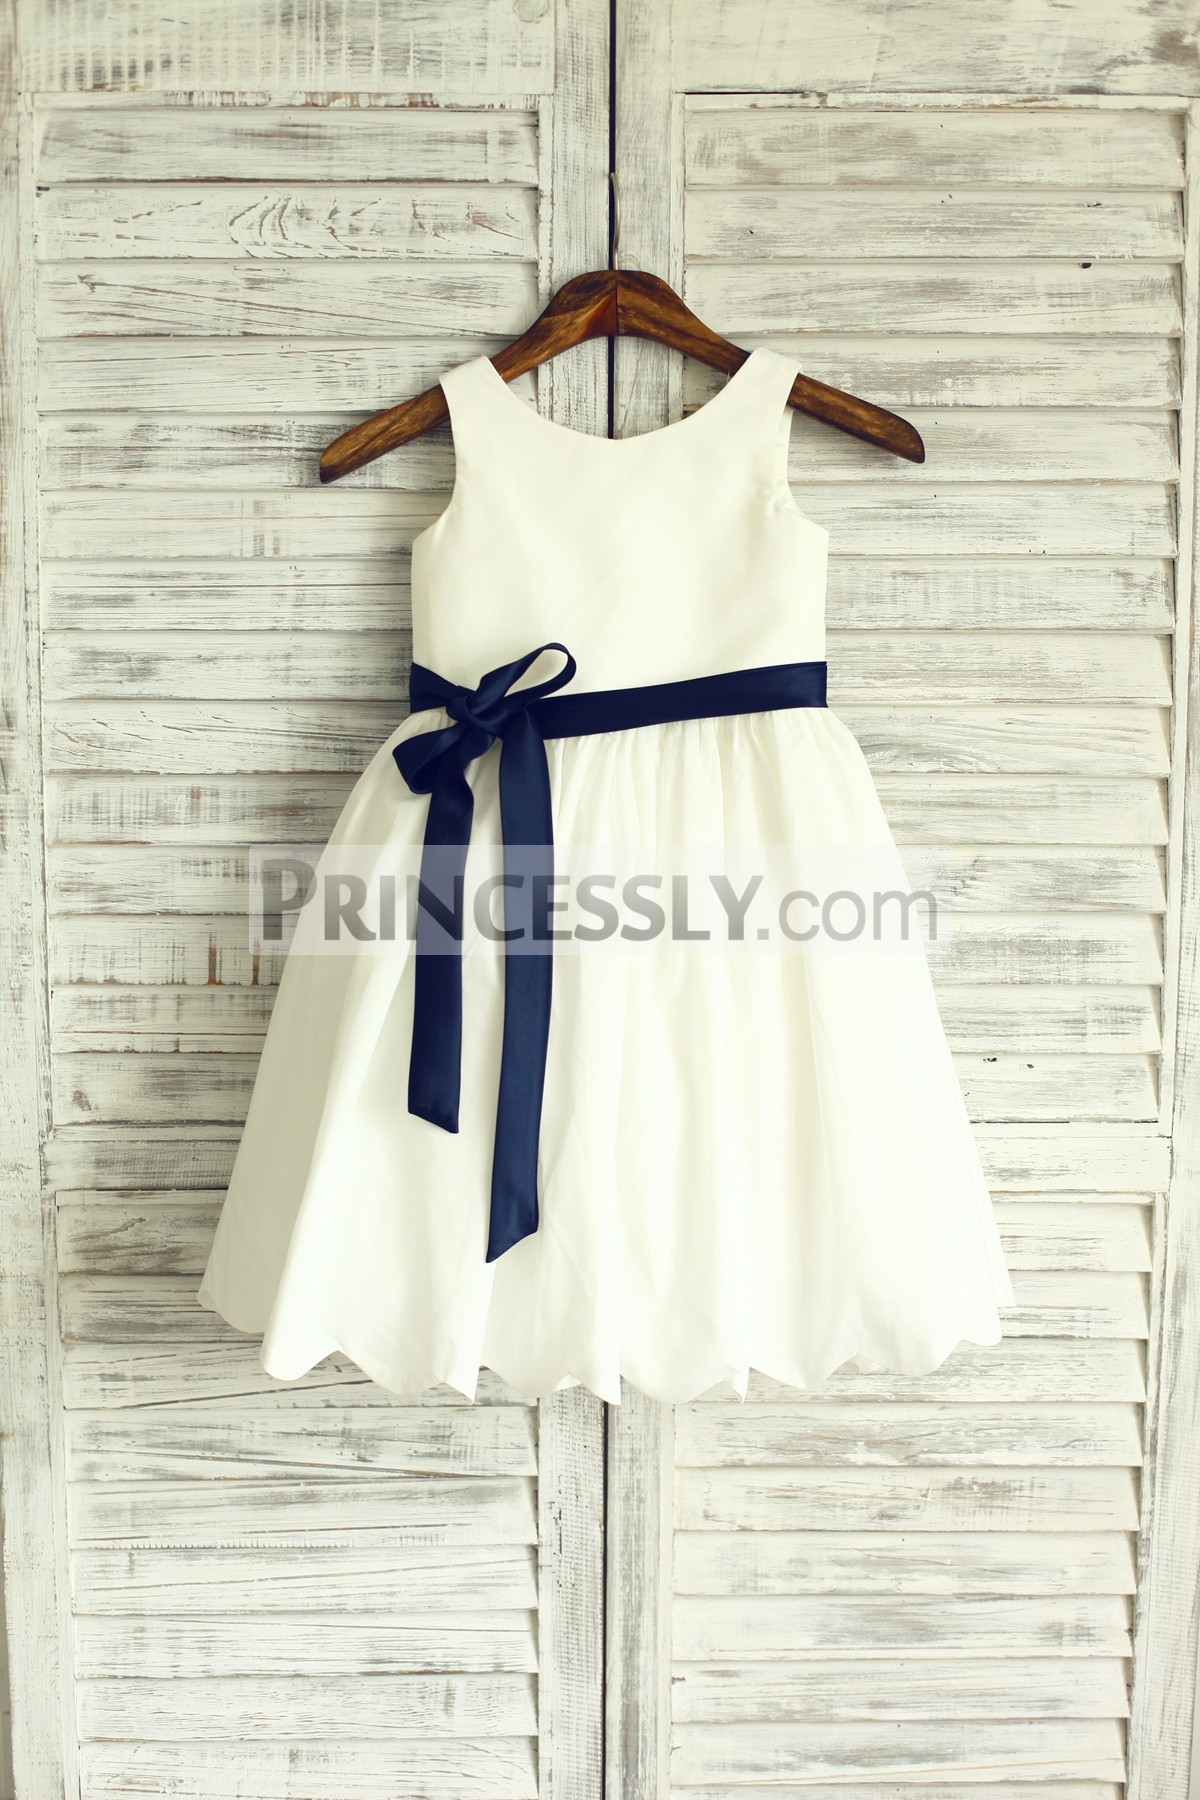 Sleeveless ivory cotton flower girl dress with navy blue sash avivaly ivory cotton flower girl dress mightylinksfo